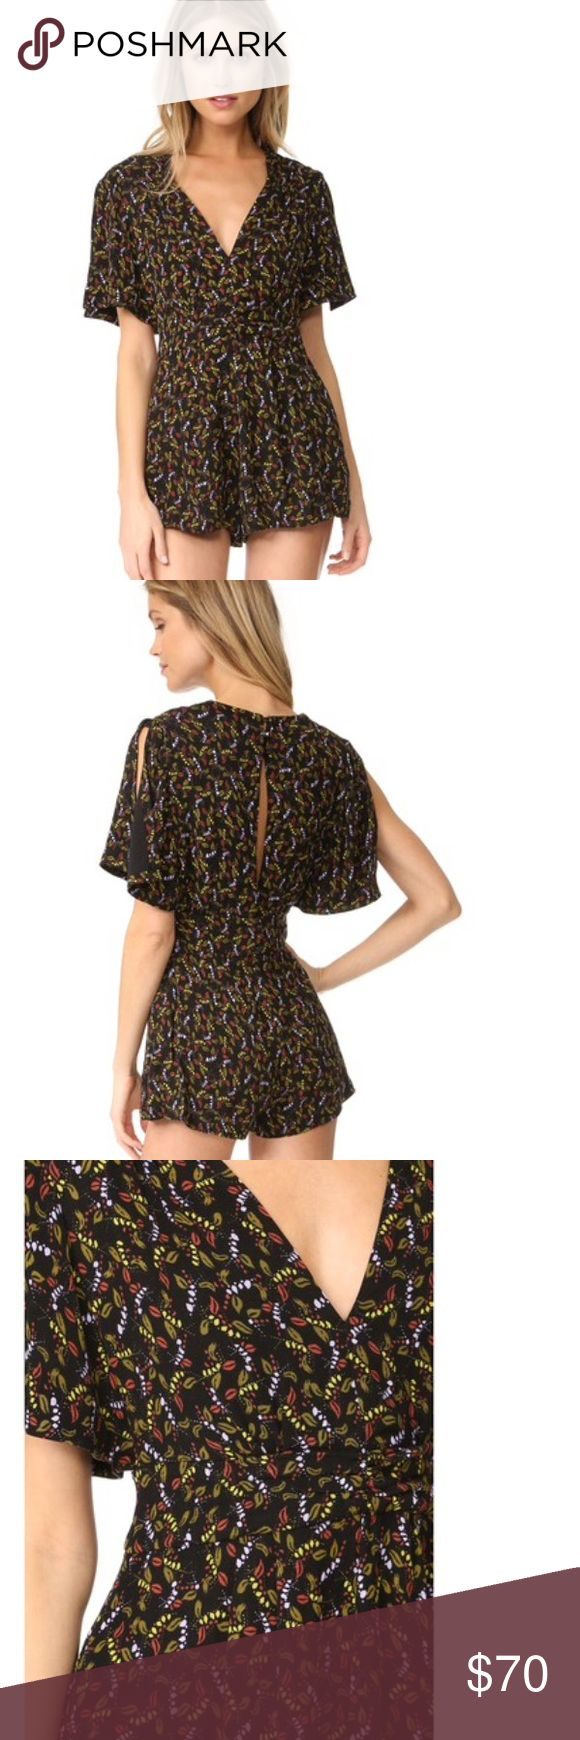 Sexy Free People Romper Dress in this Free People Romper!  Deep V neckline  Divided back panel with button closure.  On-seam hip pockets.  Hidden side zip. Floral ditsy colorful leaf flower print  65% viscose/35% rayon. Size 4. Fits 2 6 small xs  It's romper season! Playsuits for spring and summer dates, parties, BBQs, beaches, brunch or causal outings! Super cute! And sexy! Fun! Jumpsuit shorts Free People Dresses